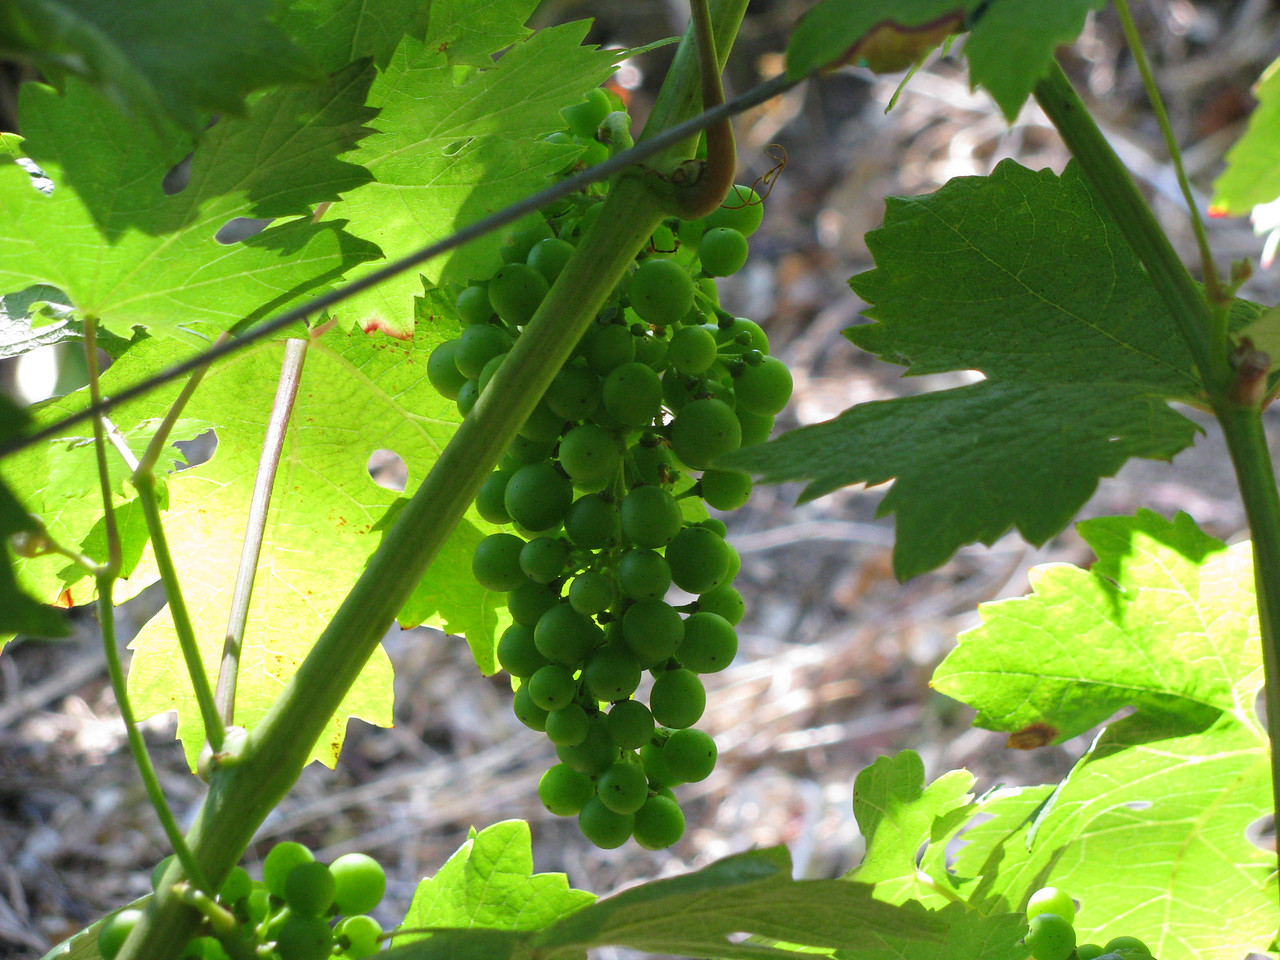 Grapes for eating or wine making.